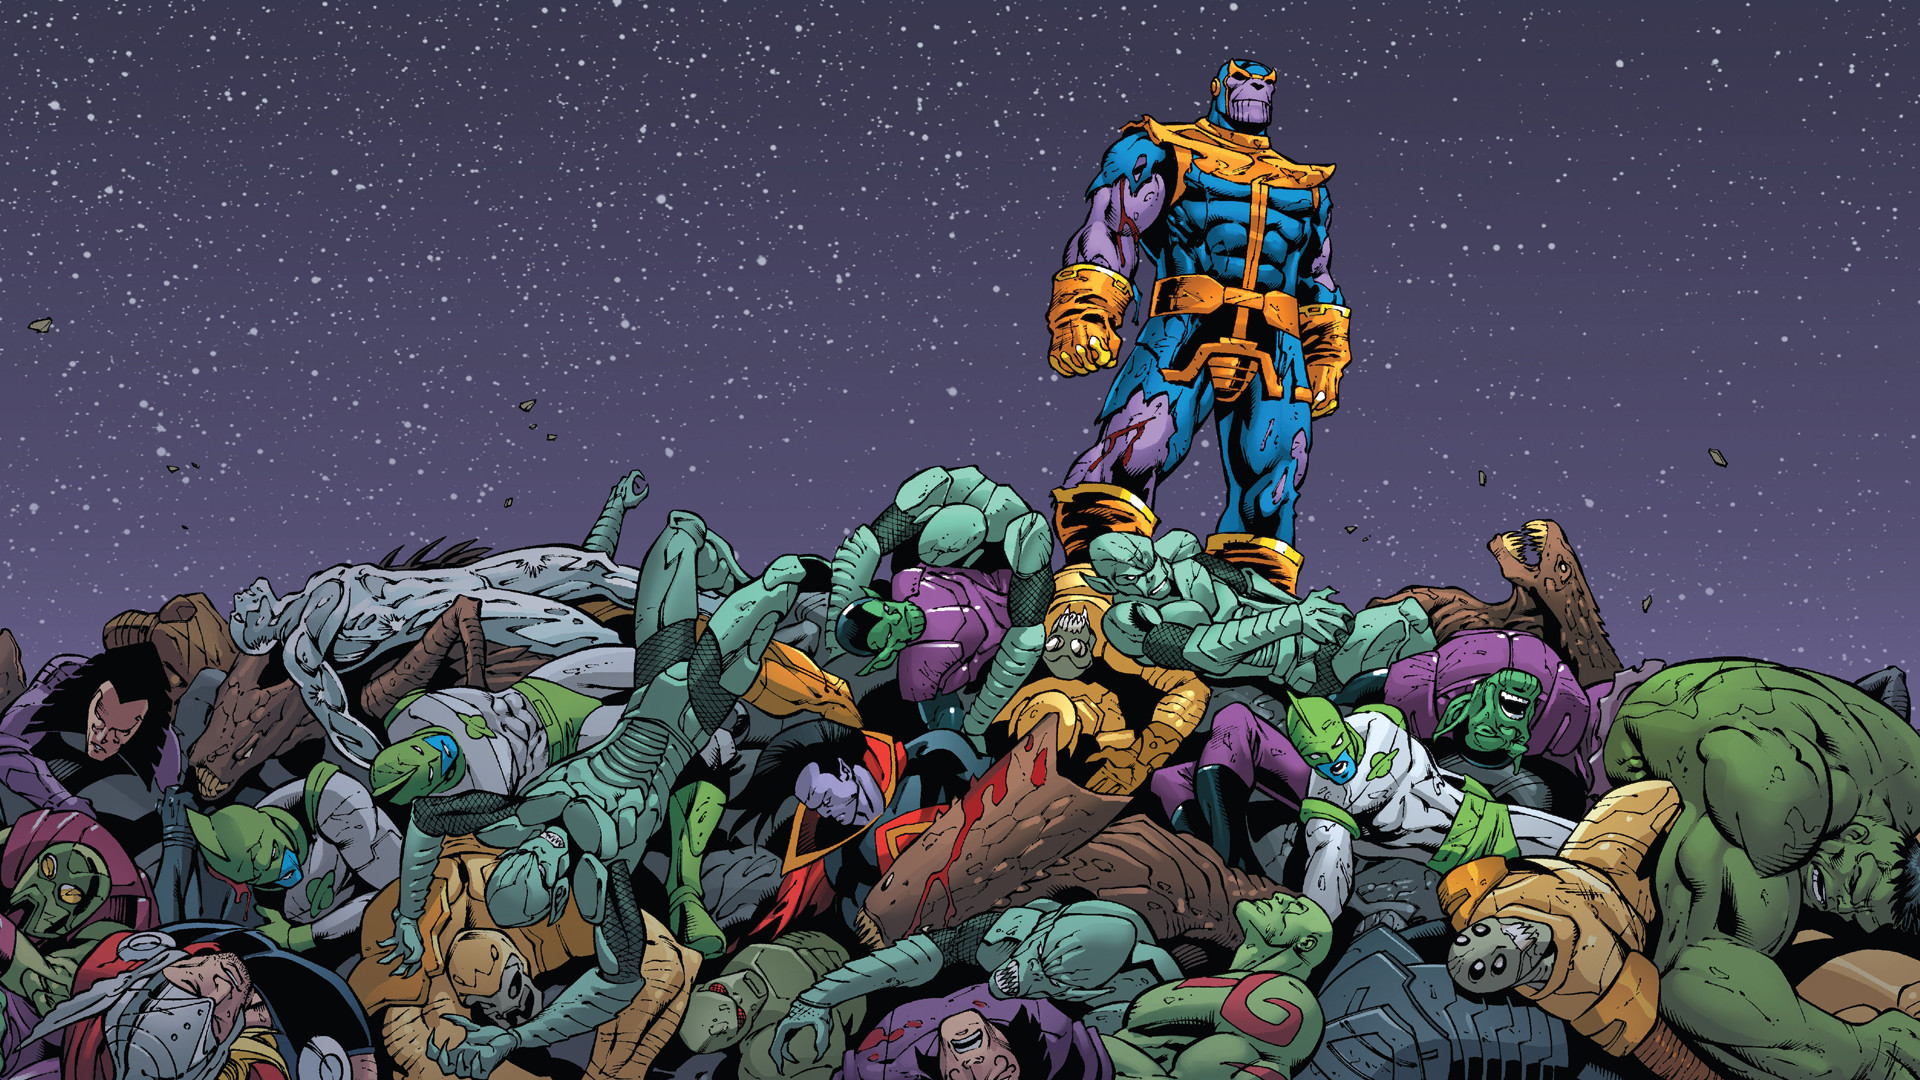 Res: 1920x1080, Thanos images